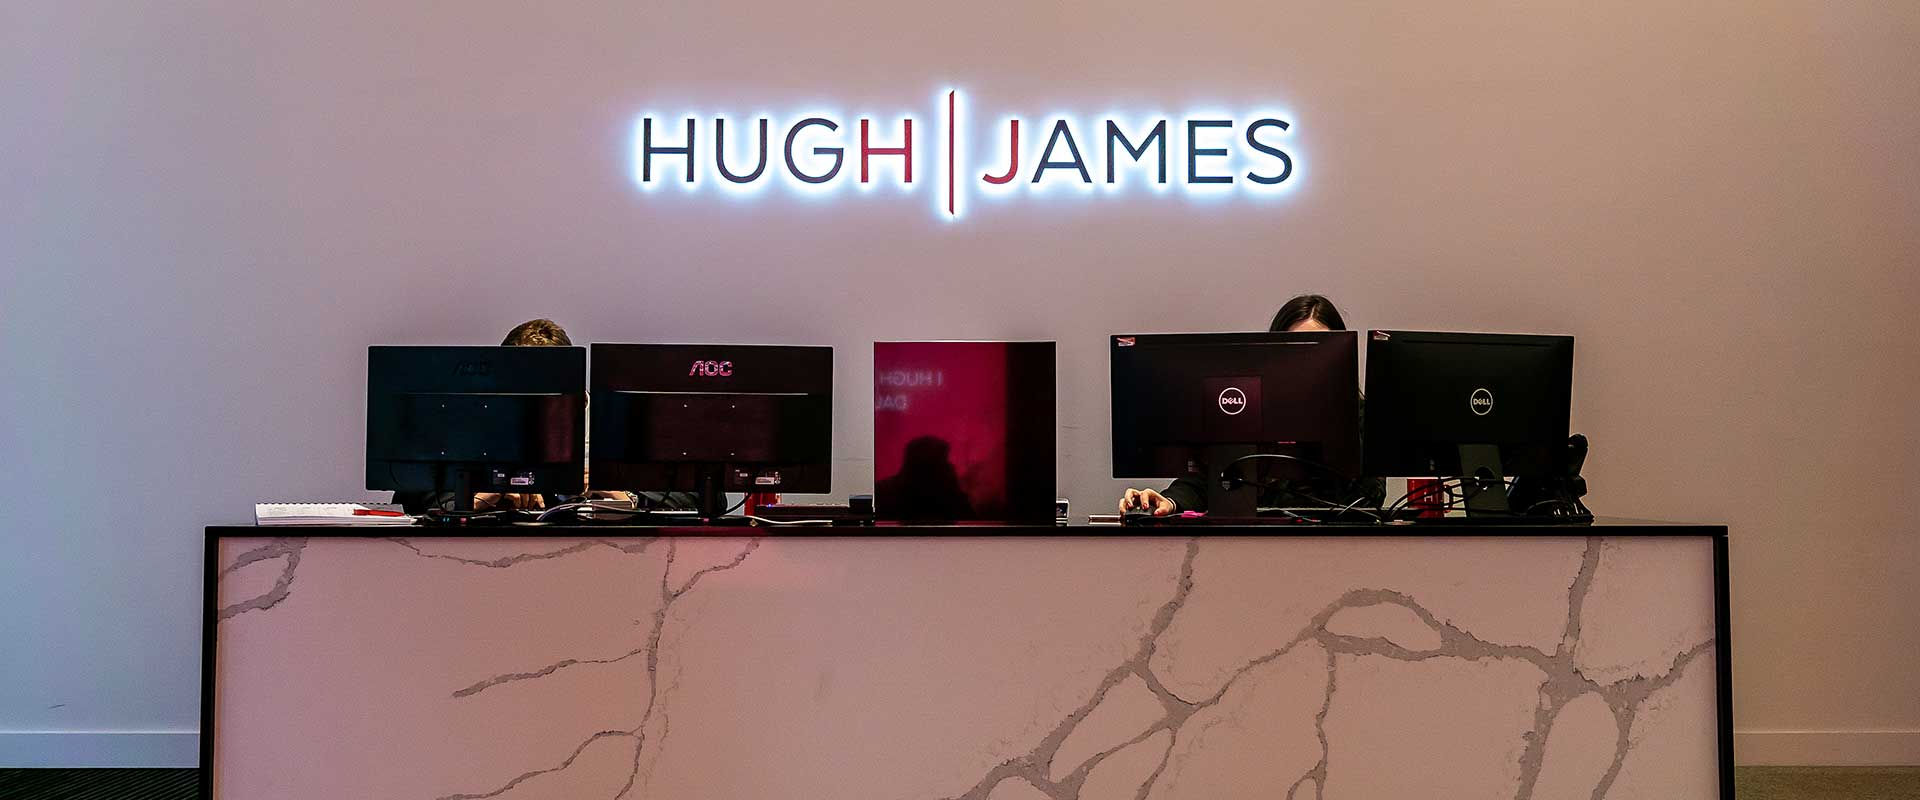 Huw James reception illuminated logo